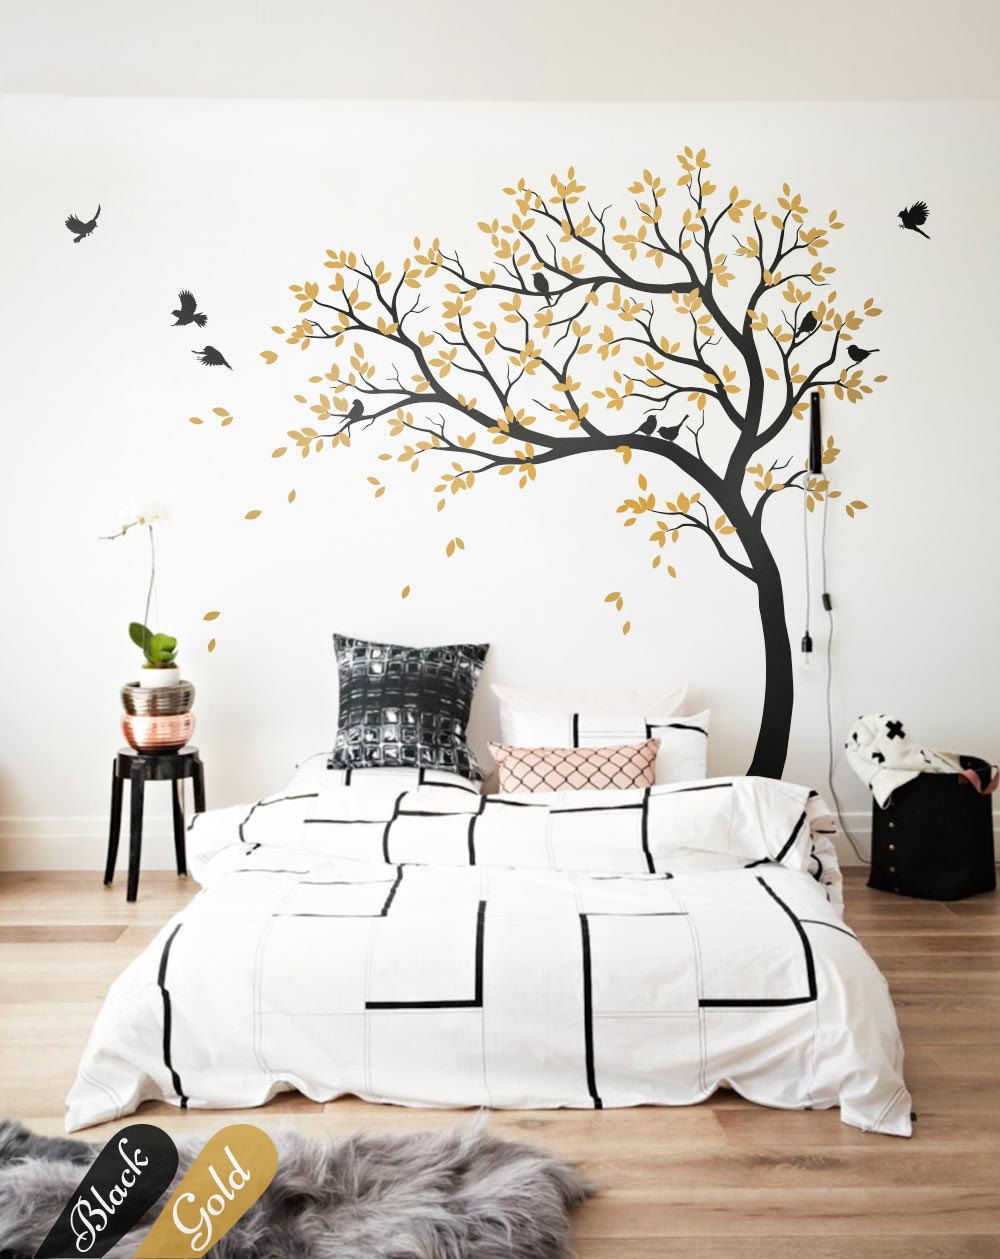 large black tree nursery wall design with cute birds and leaves baby room decor diy